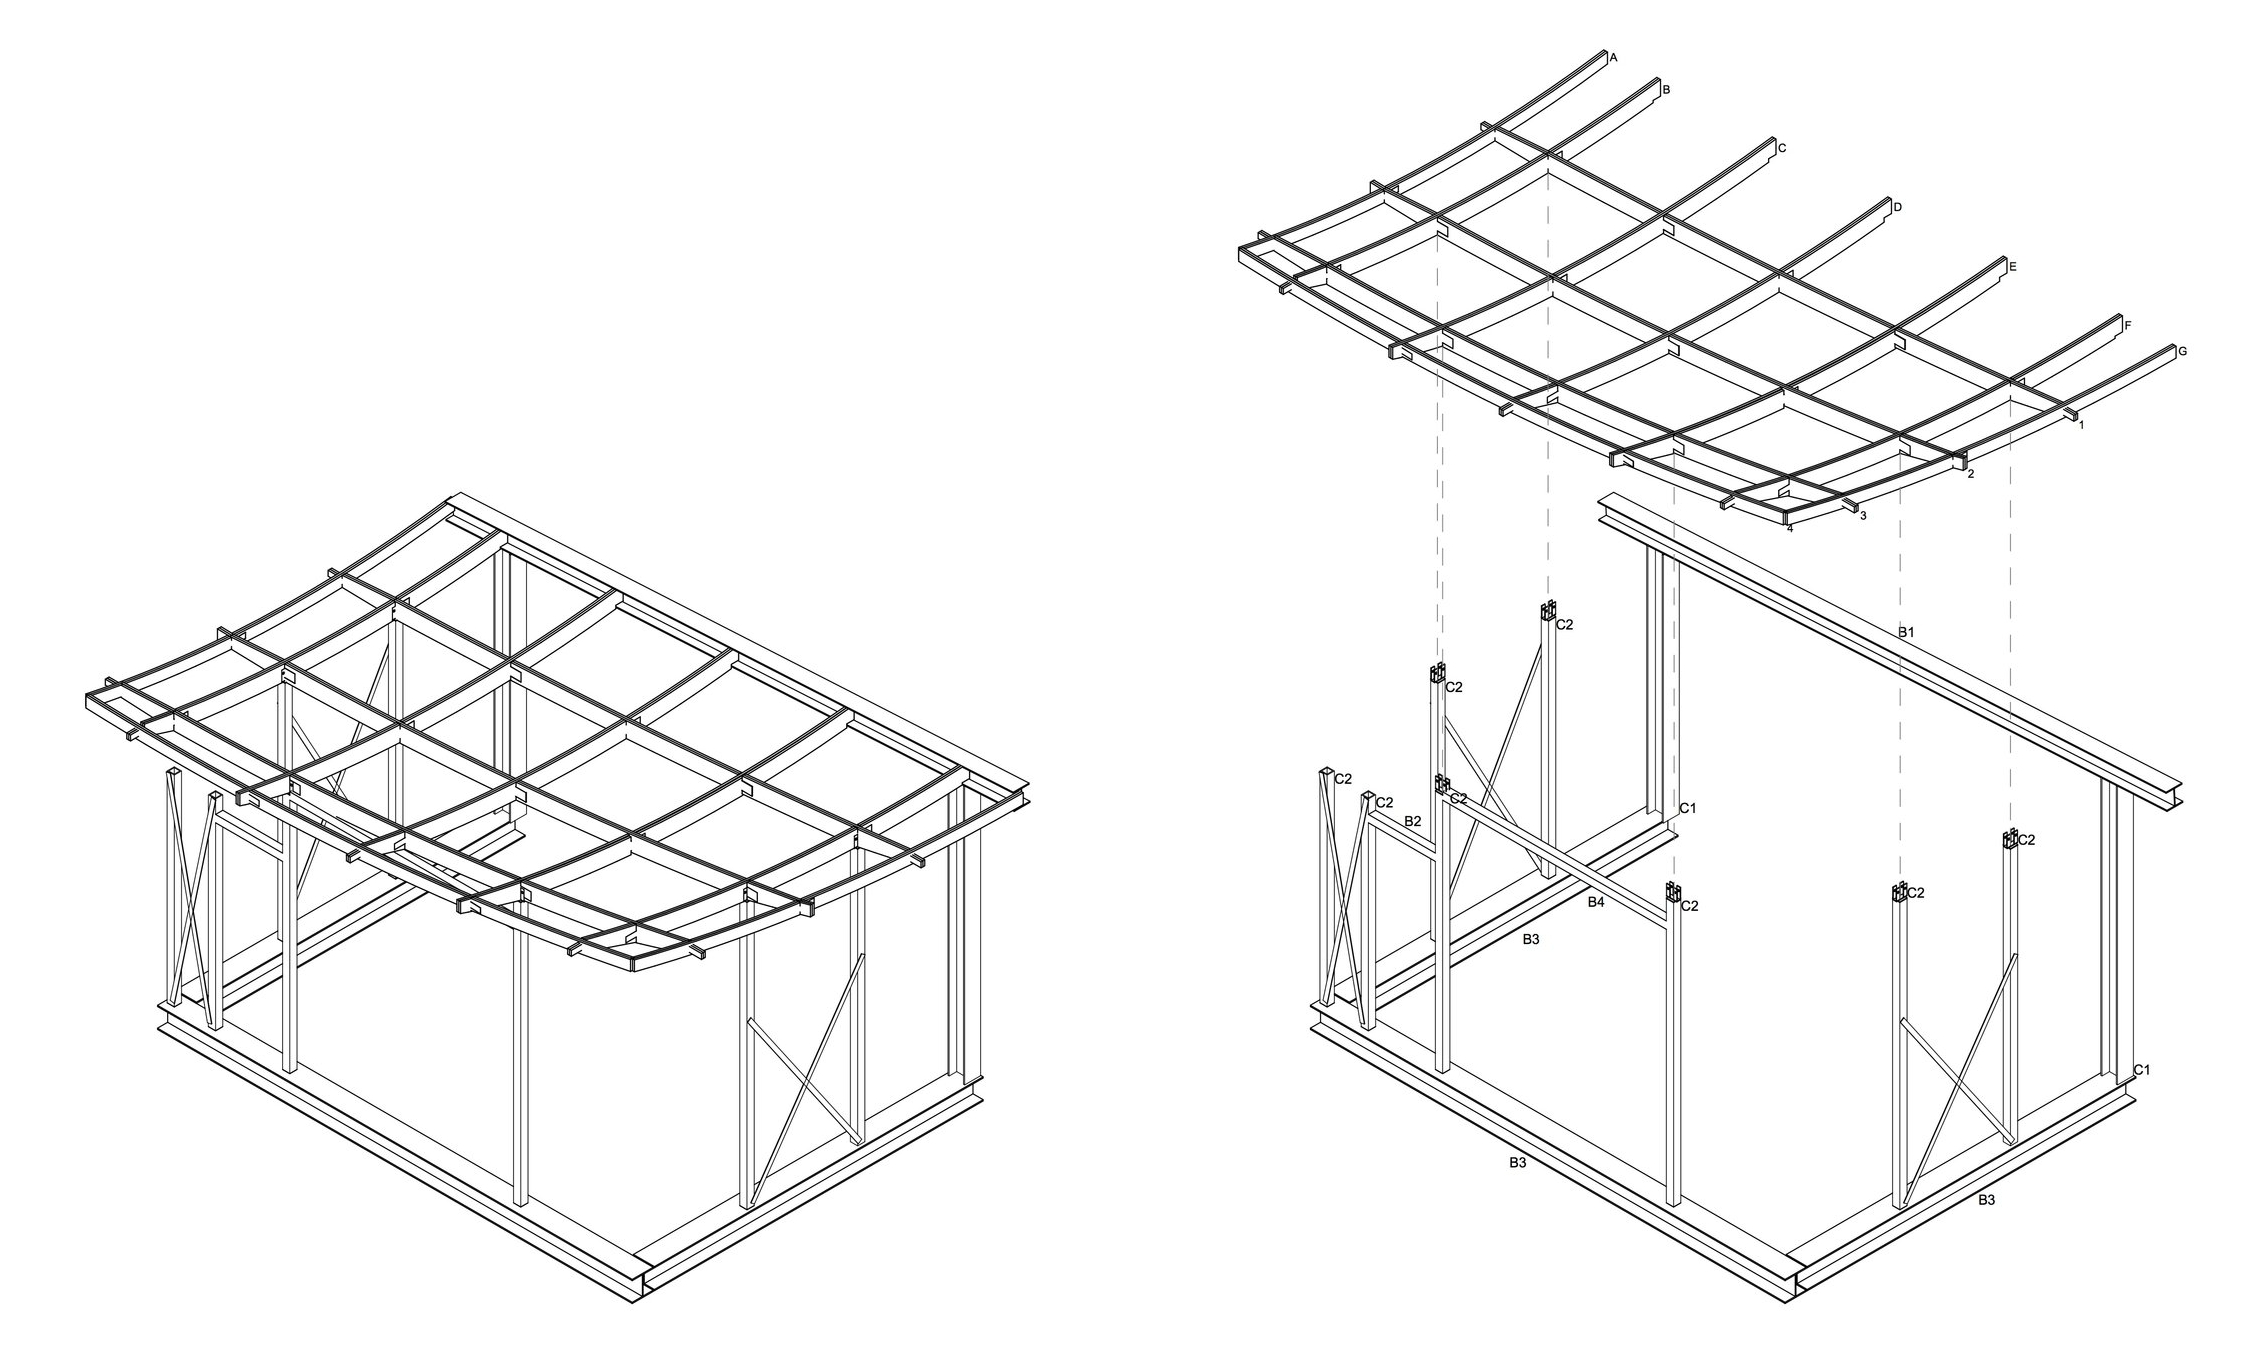 """How we developed an innovative roof construction method"" - Independent Place - MW Architects"